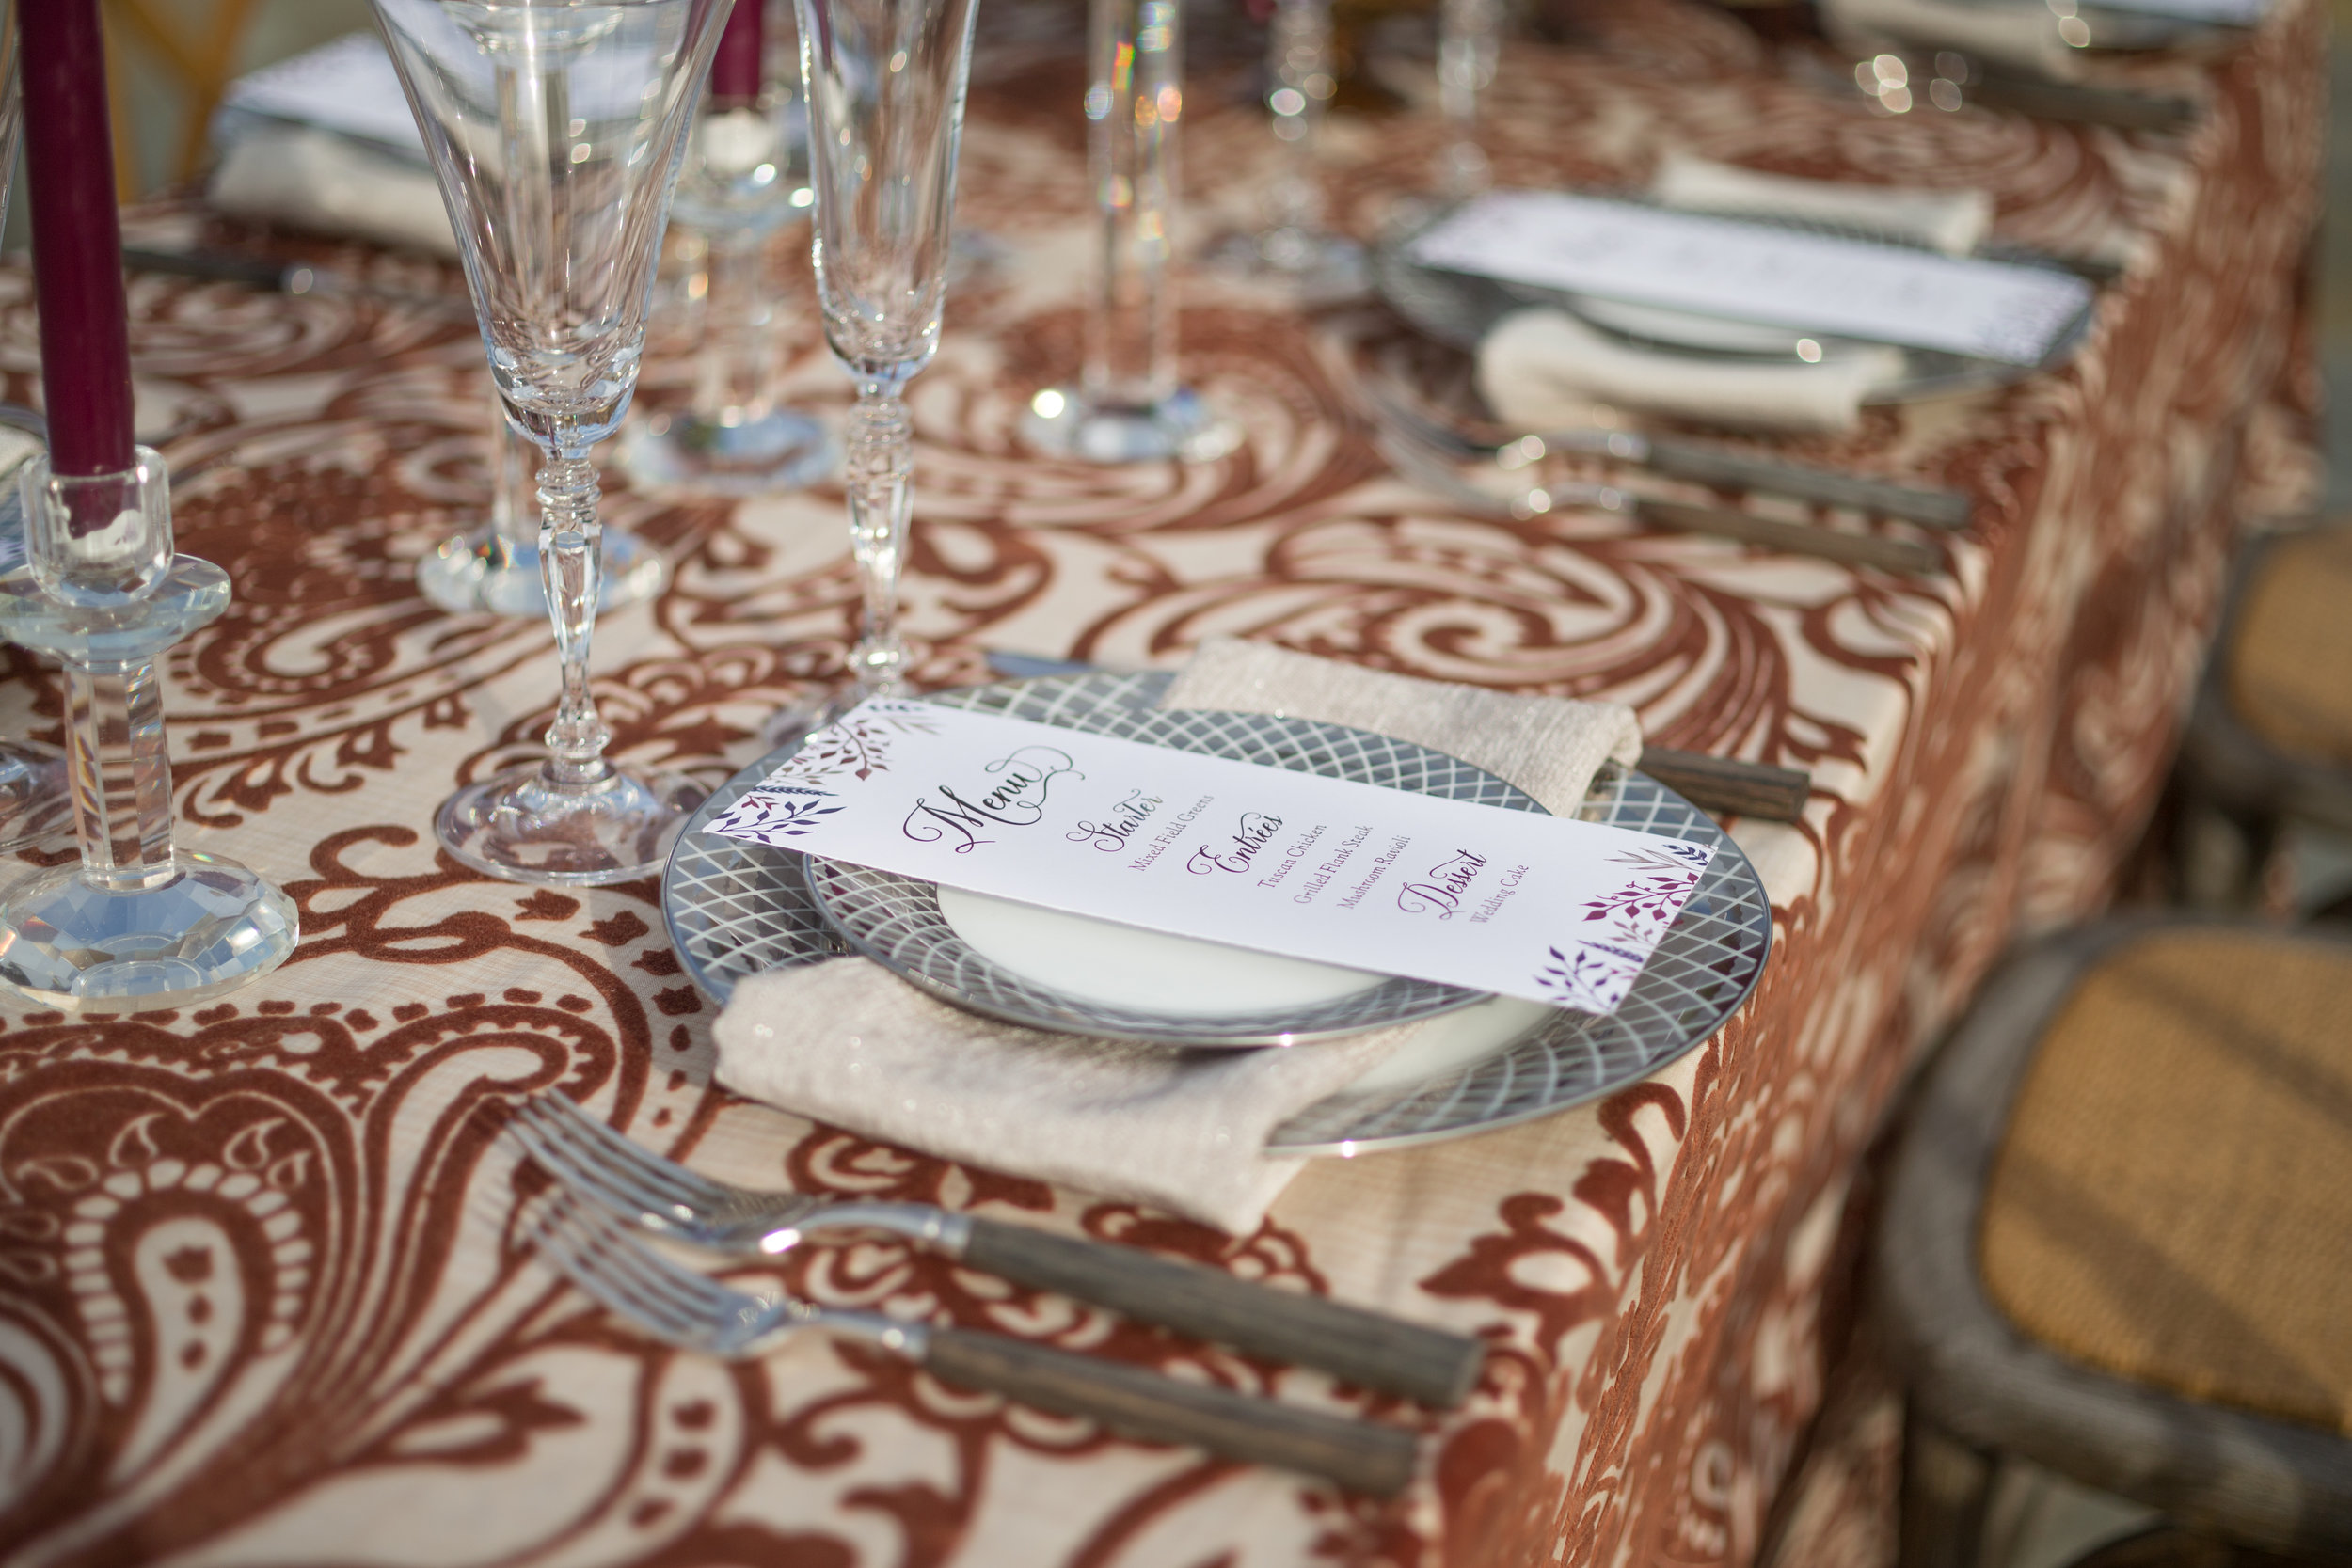 NYC Wedding Planner Ashley Douglass Events at Harvest Moon Farm Orchard with Roseville Designs and Blade NYC Floral Designs